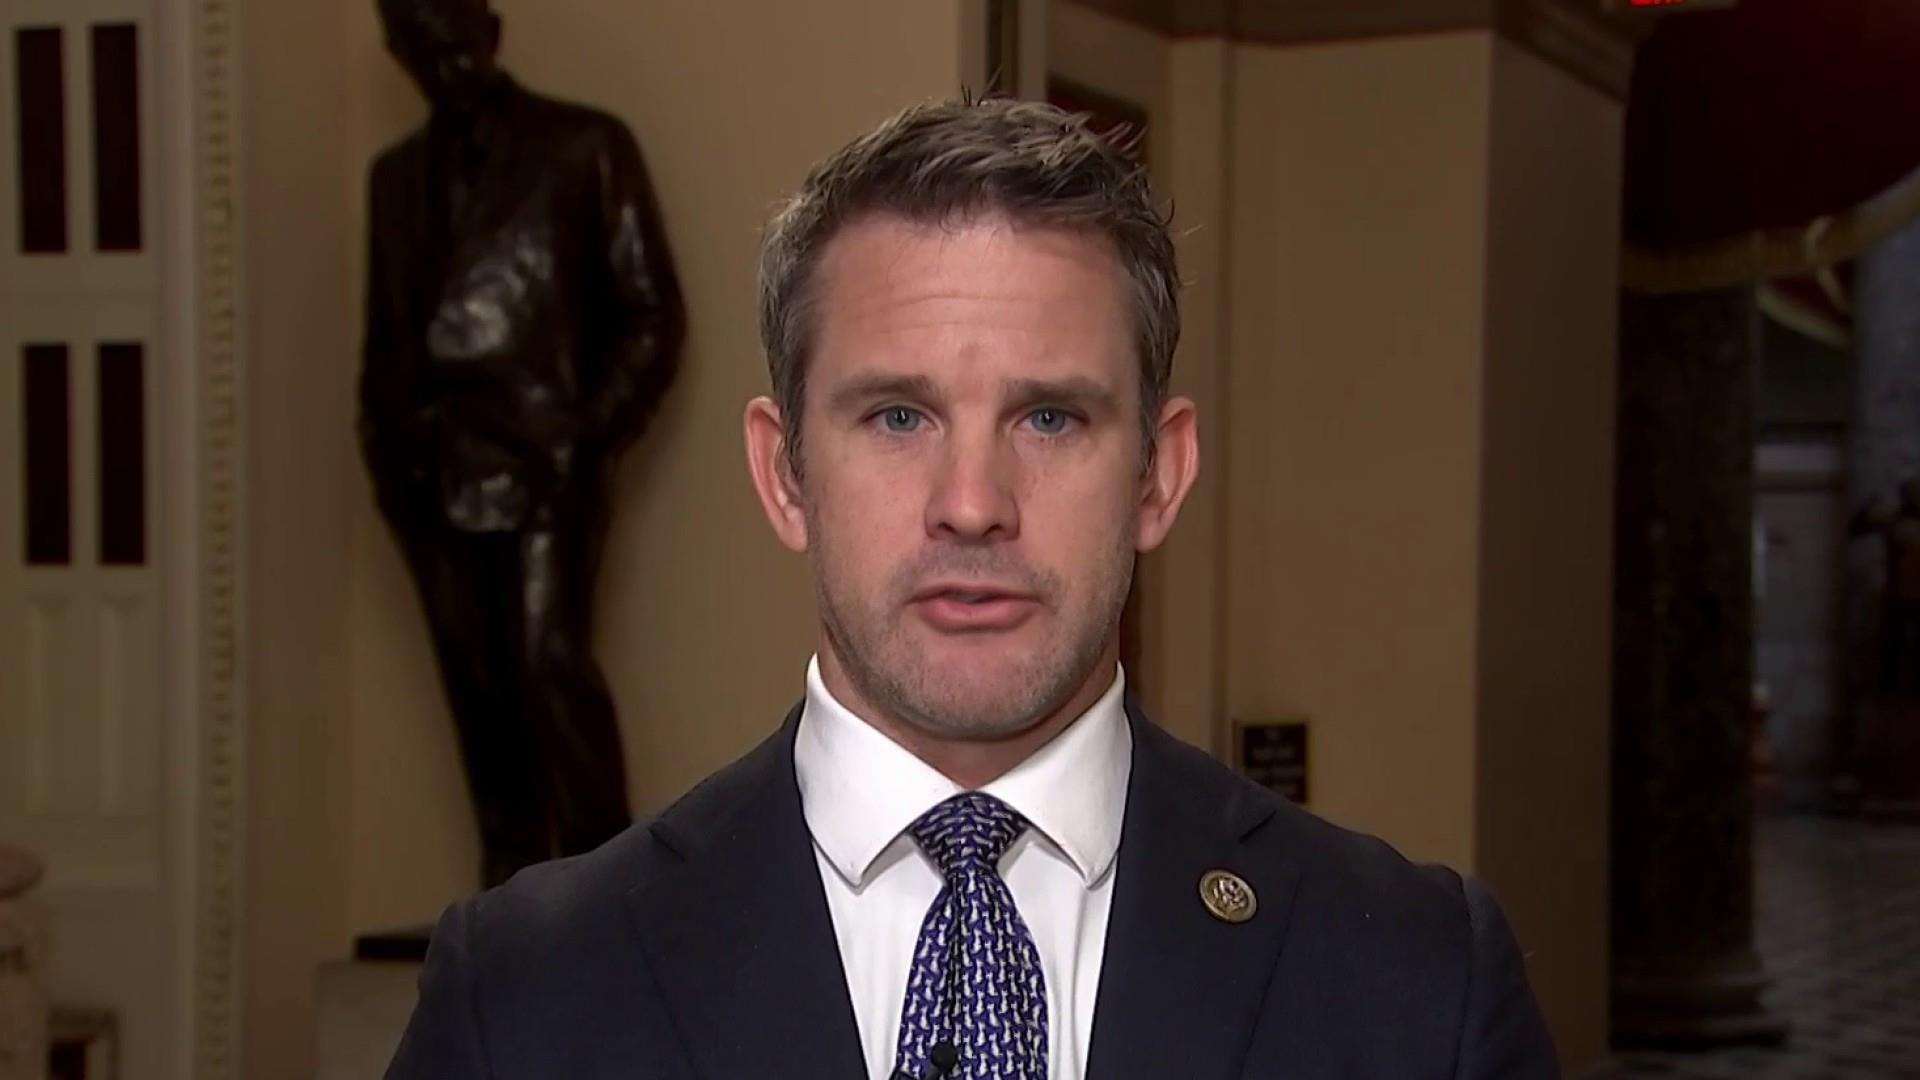 Border security essential because of what I've seen: Rep. Kinzinger